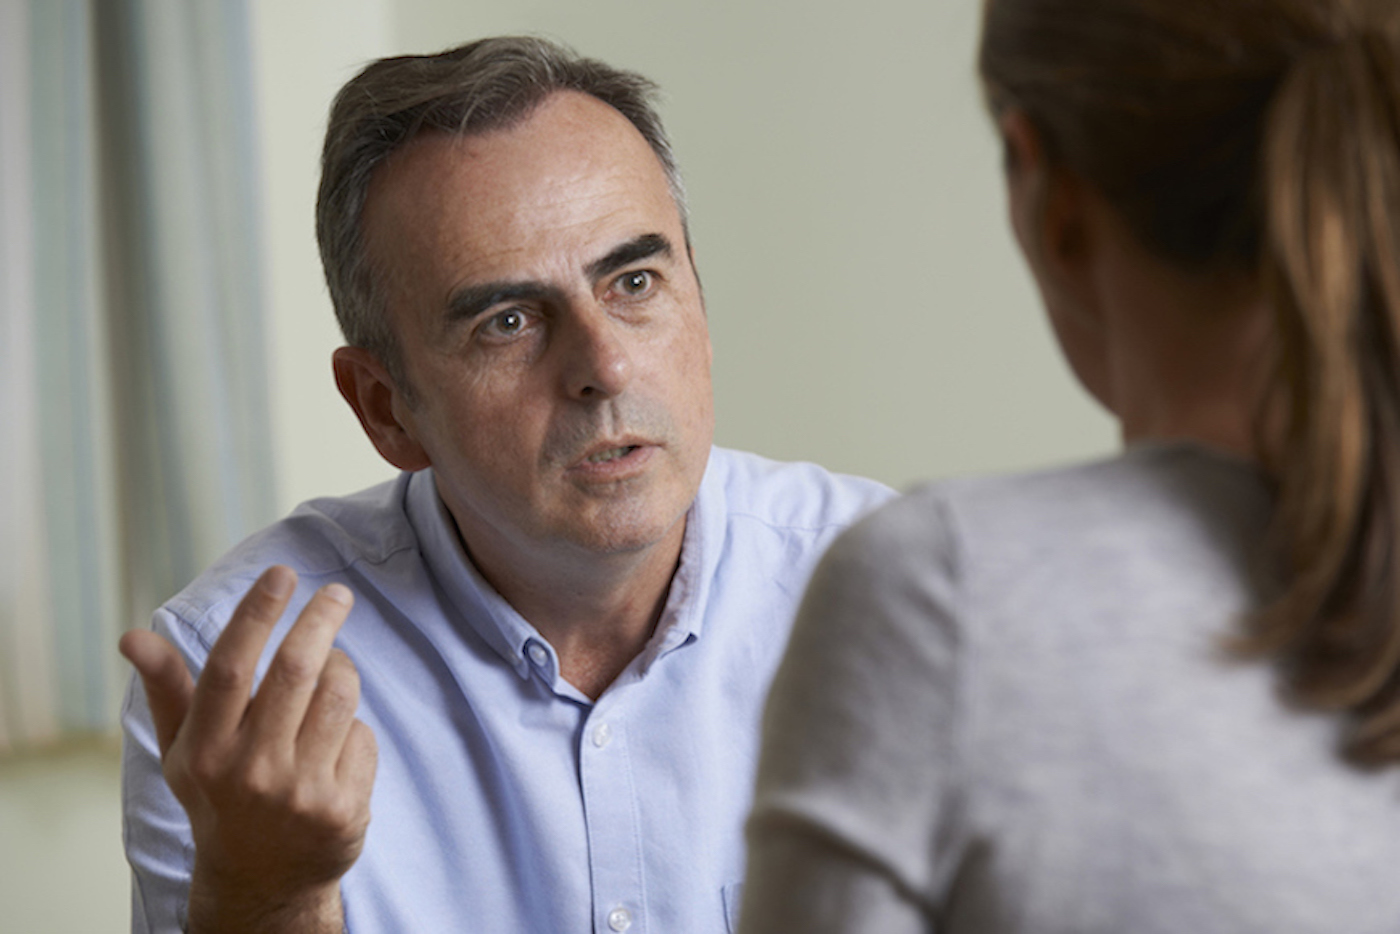 Telehealth Adult psychotherapy